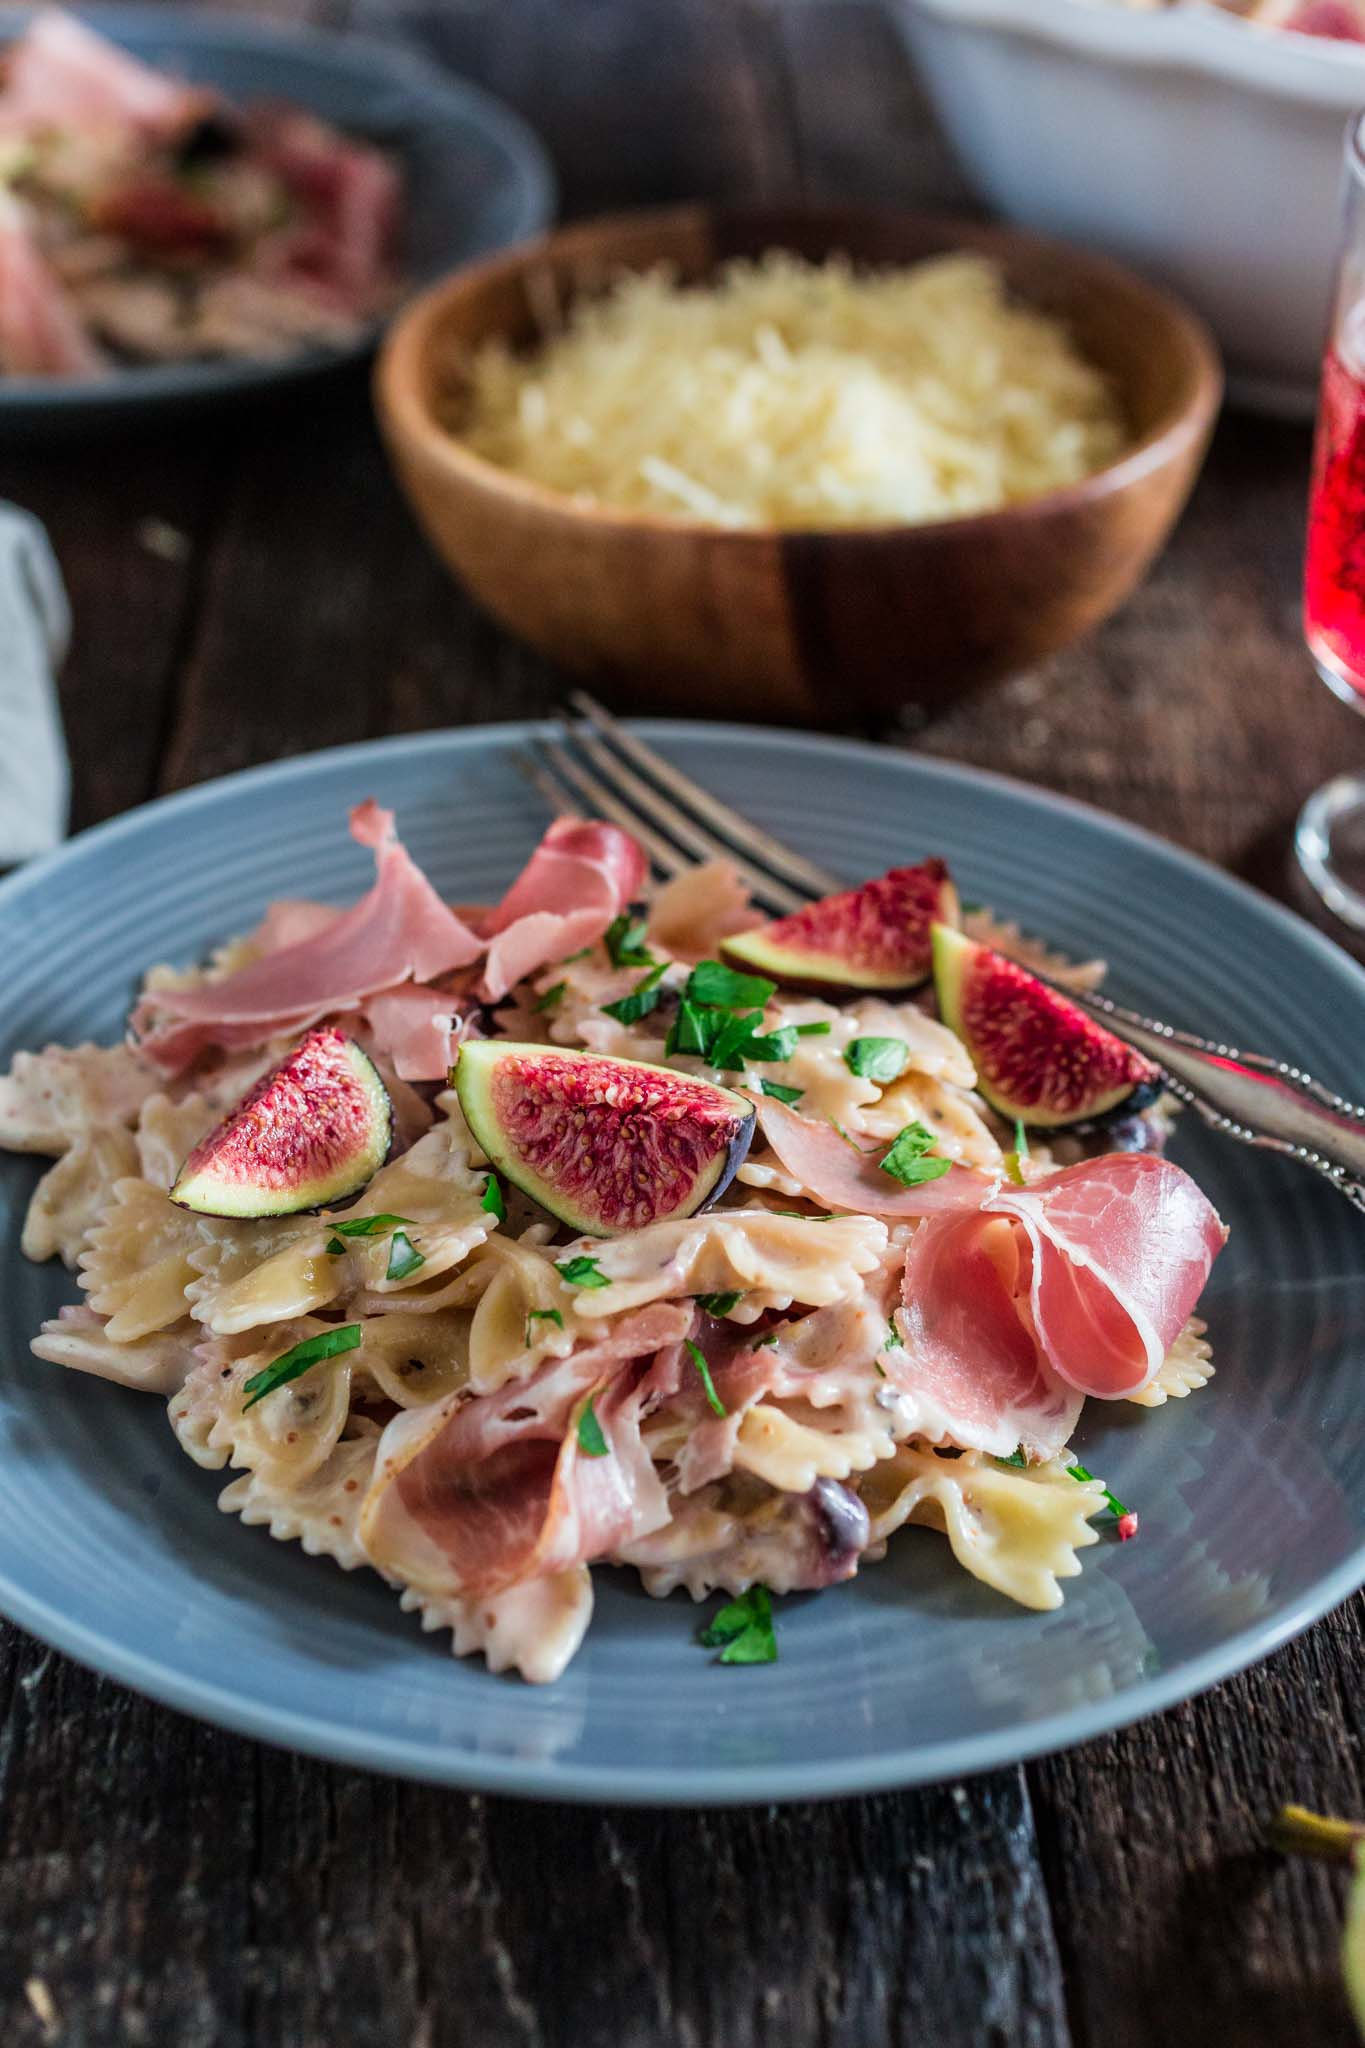 Farfalle with Fresh Figs and Prosciutto | www.oliviascuisine.com | A delicious and easy pasta dish using the sweetest, seasonal figs and salty prosciutto. If you could eat summer, this would be it!